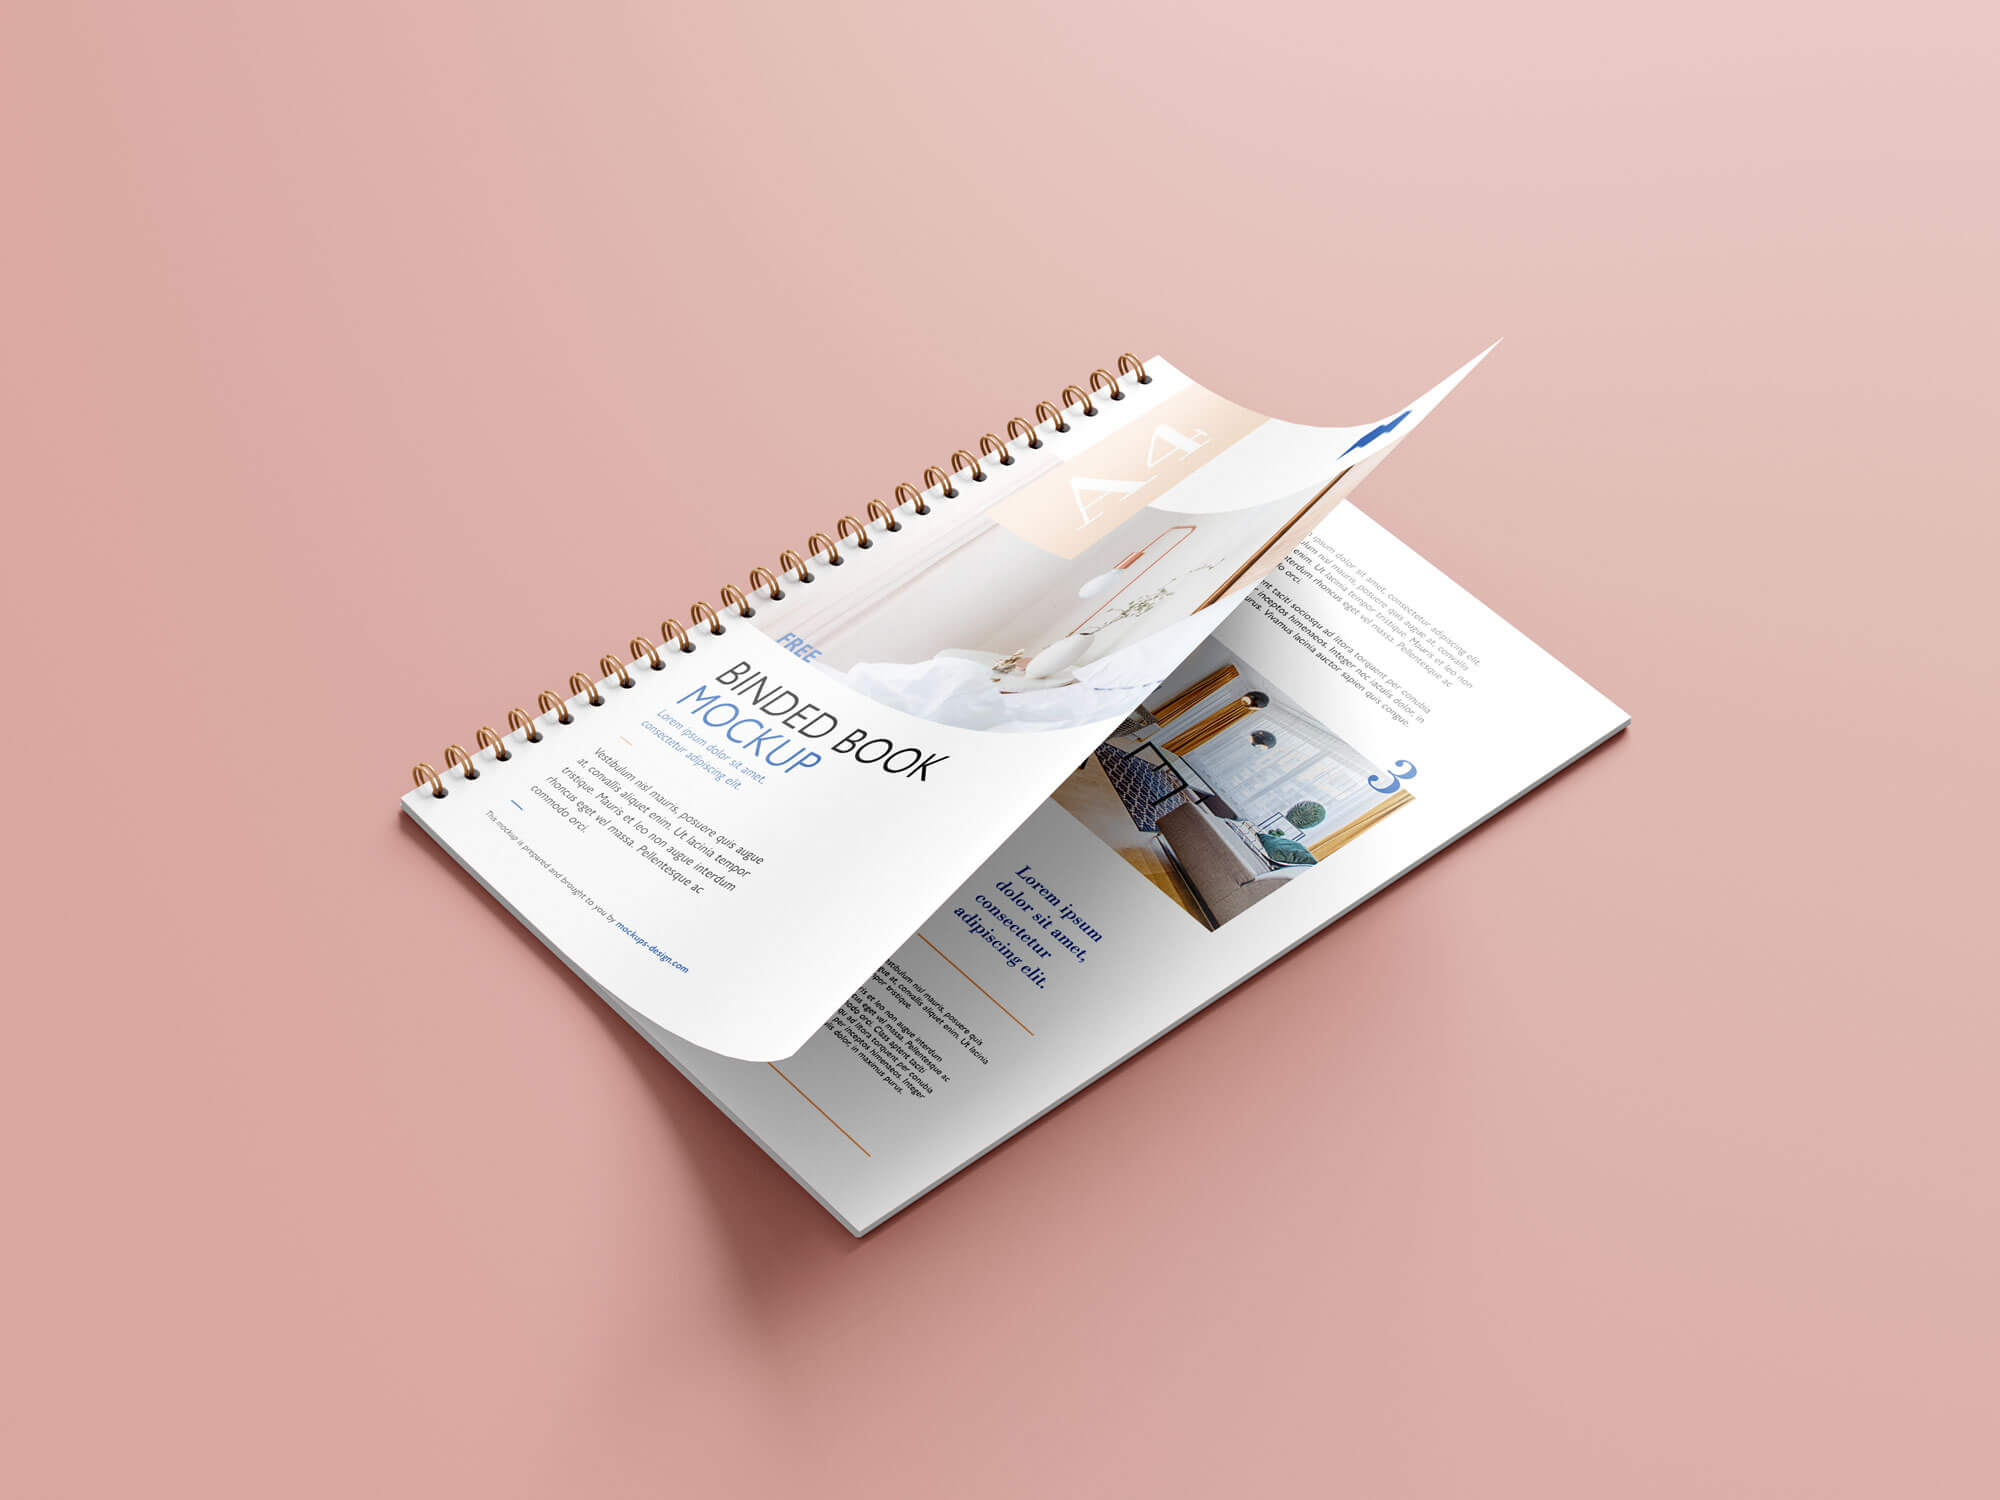 Free-Ring-Binder-Spiral-Bound-Notebook-Book-Mockup-PSD